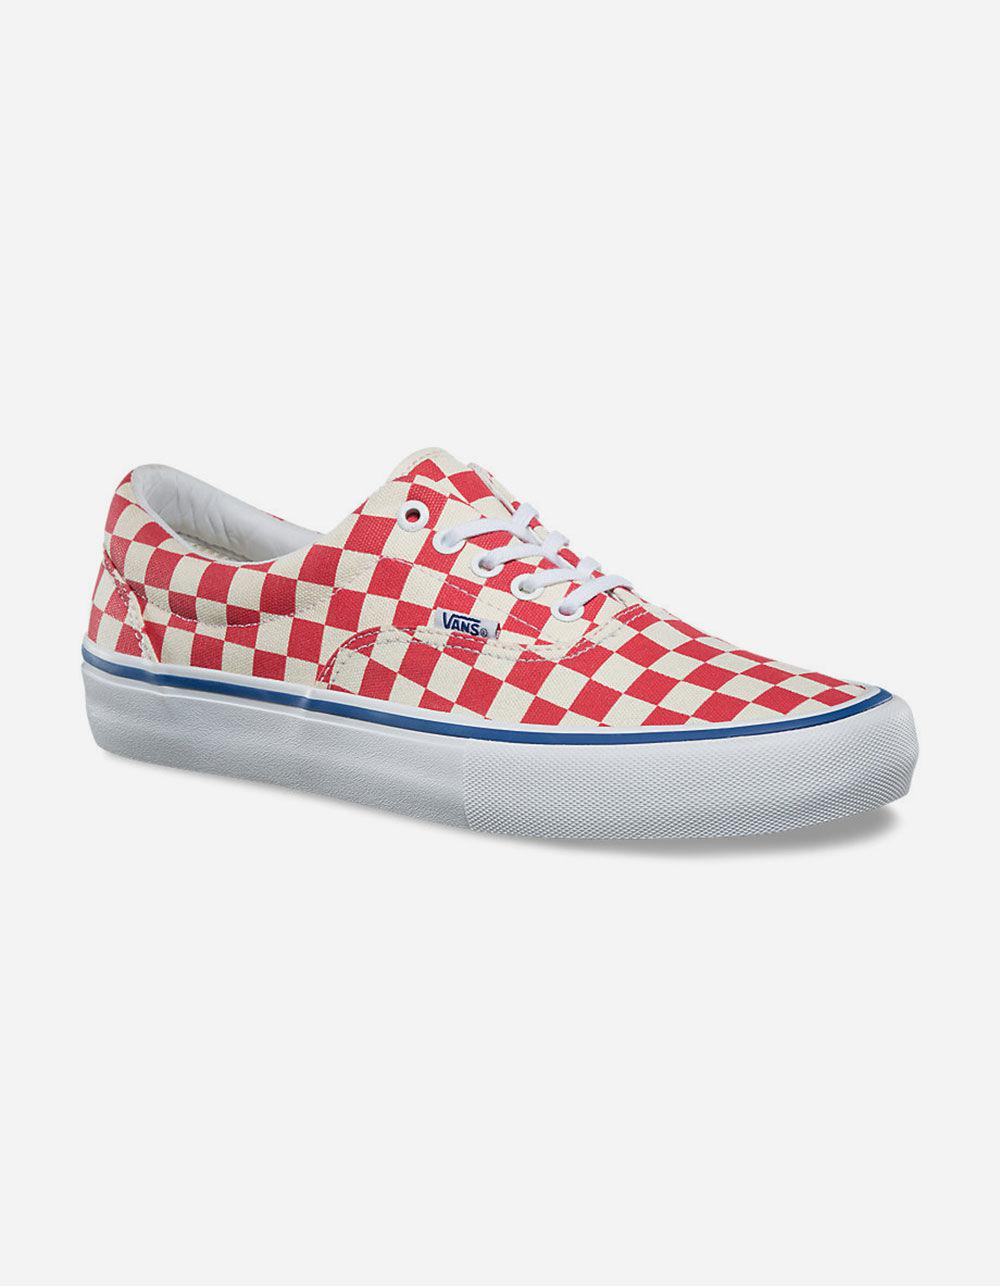 7f2f4ef5846e Lyst - Vans Checkerboard Era Pro Shoes in Red